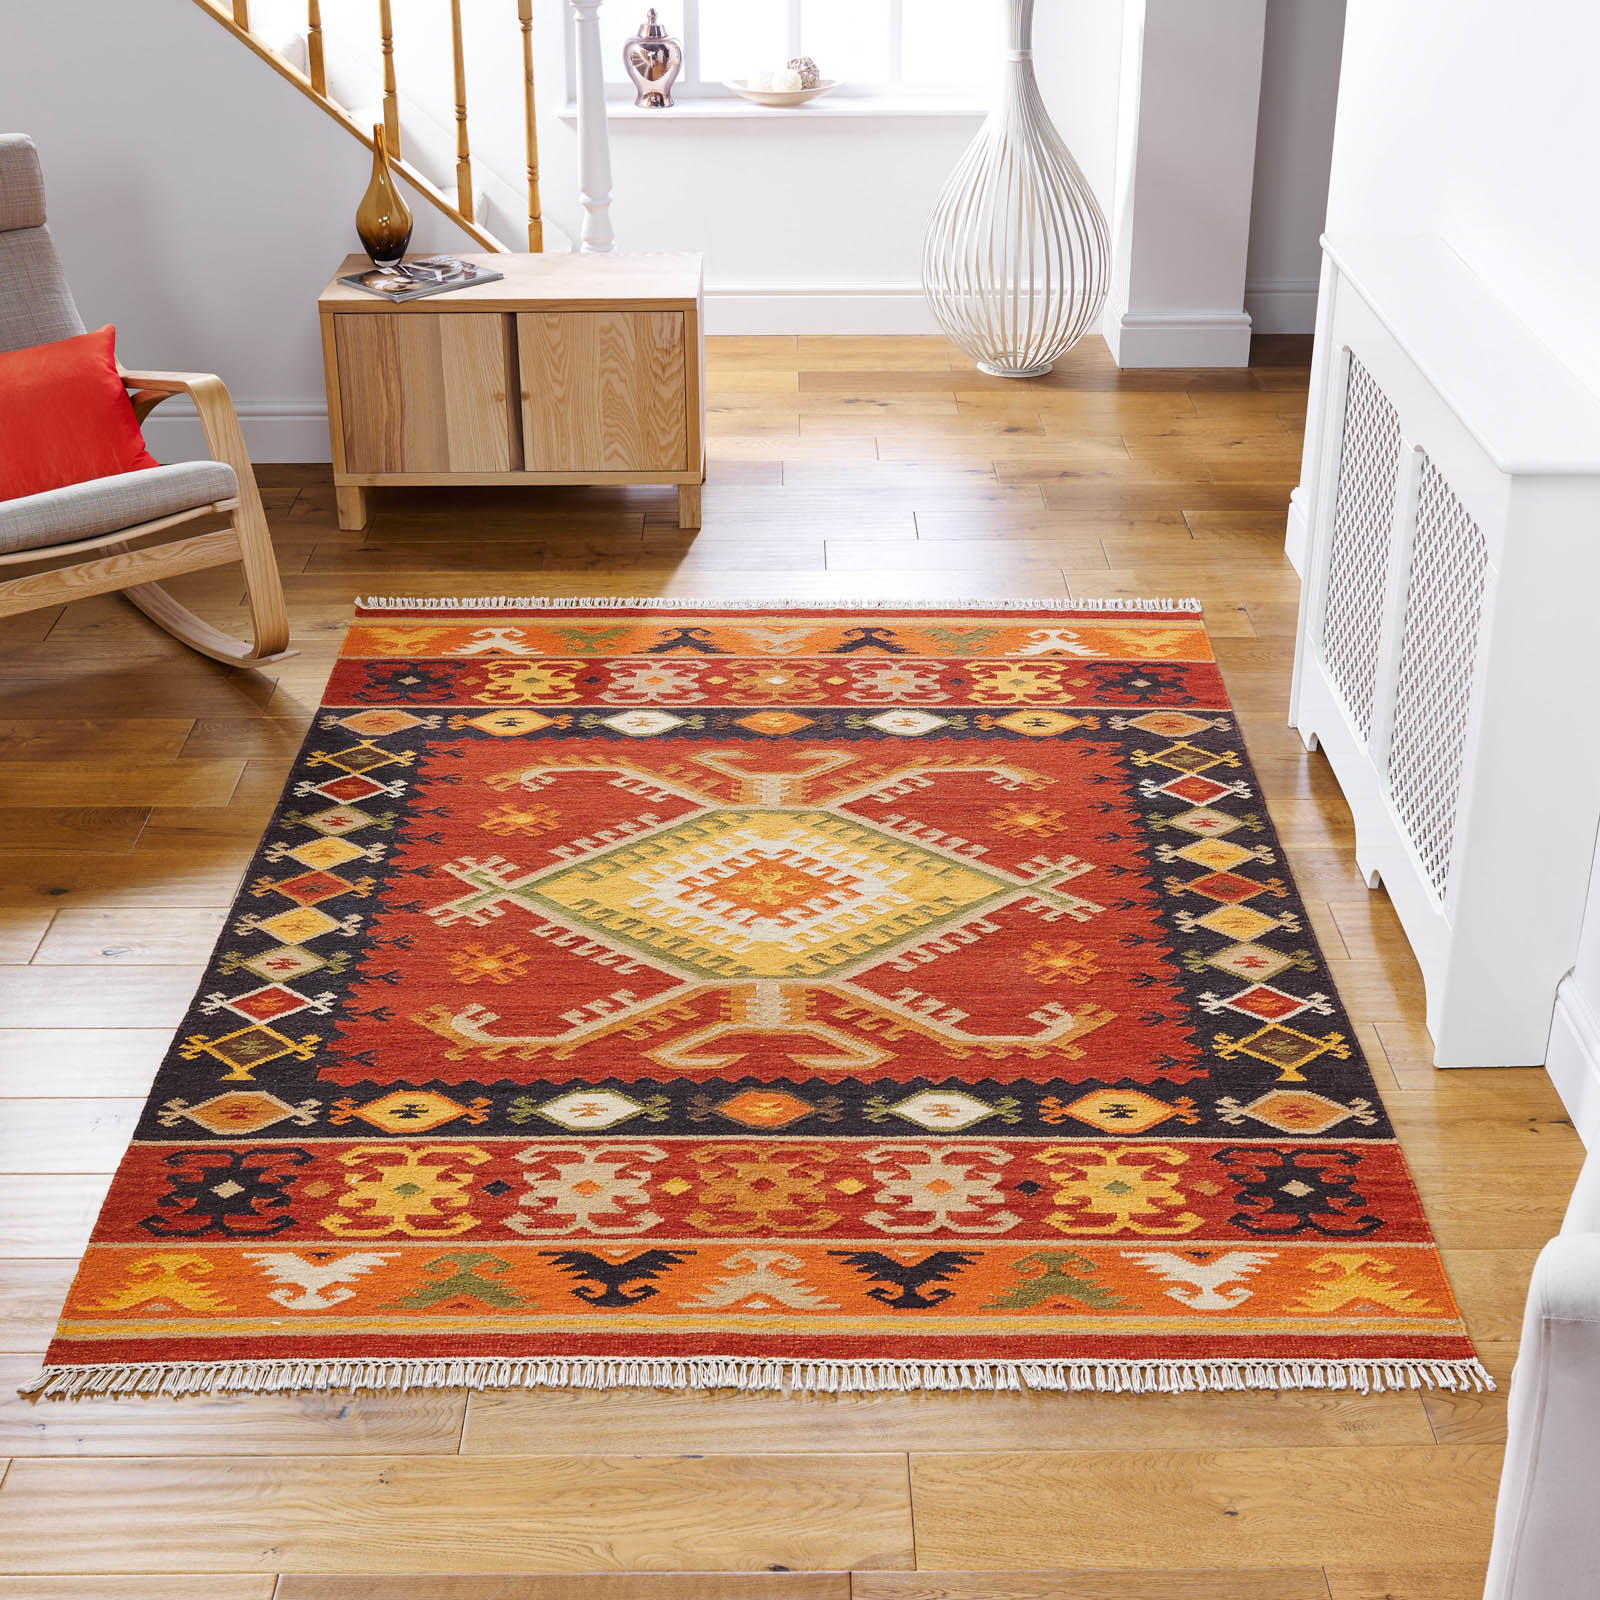 Caucasian Rugs Uk: The Rug Seller